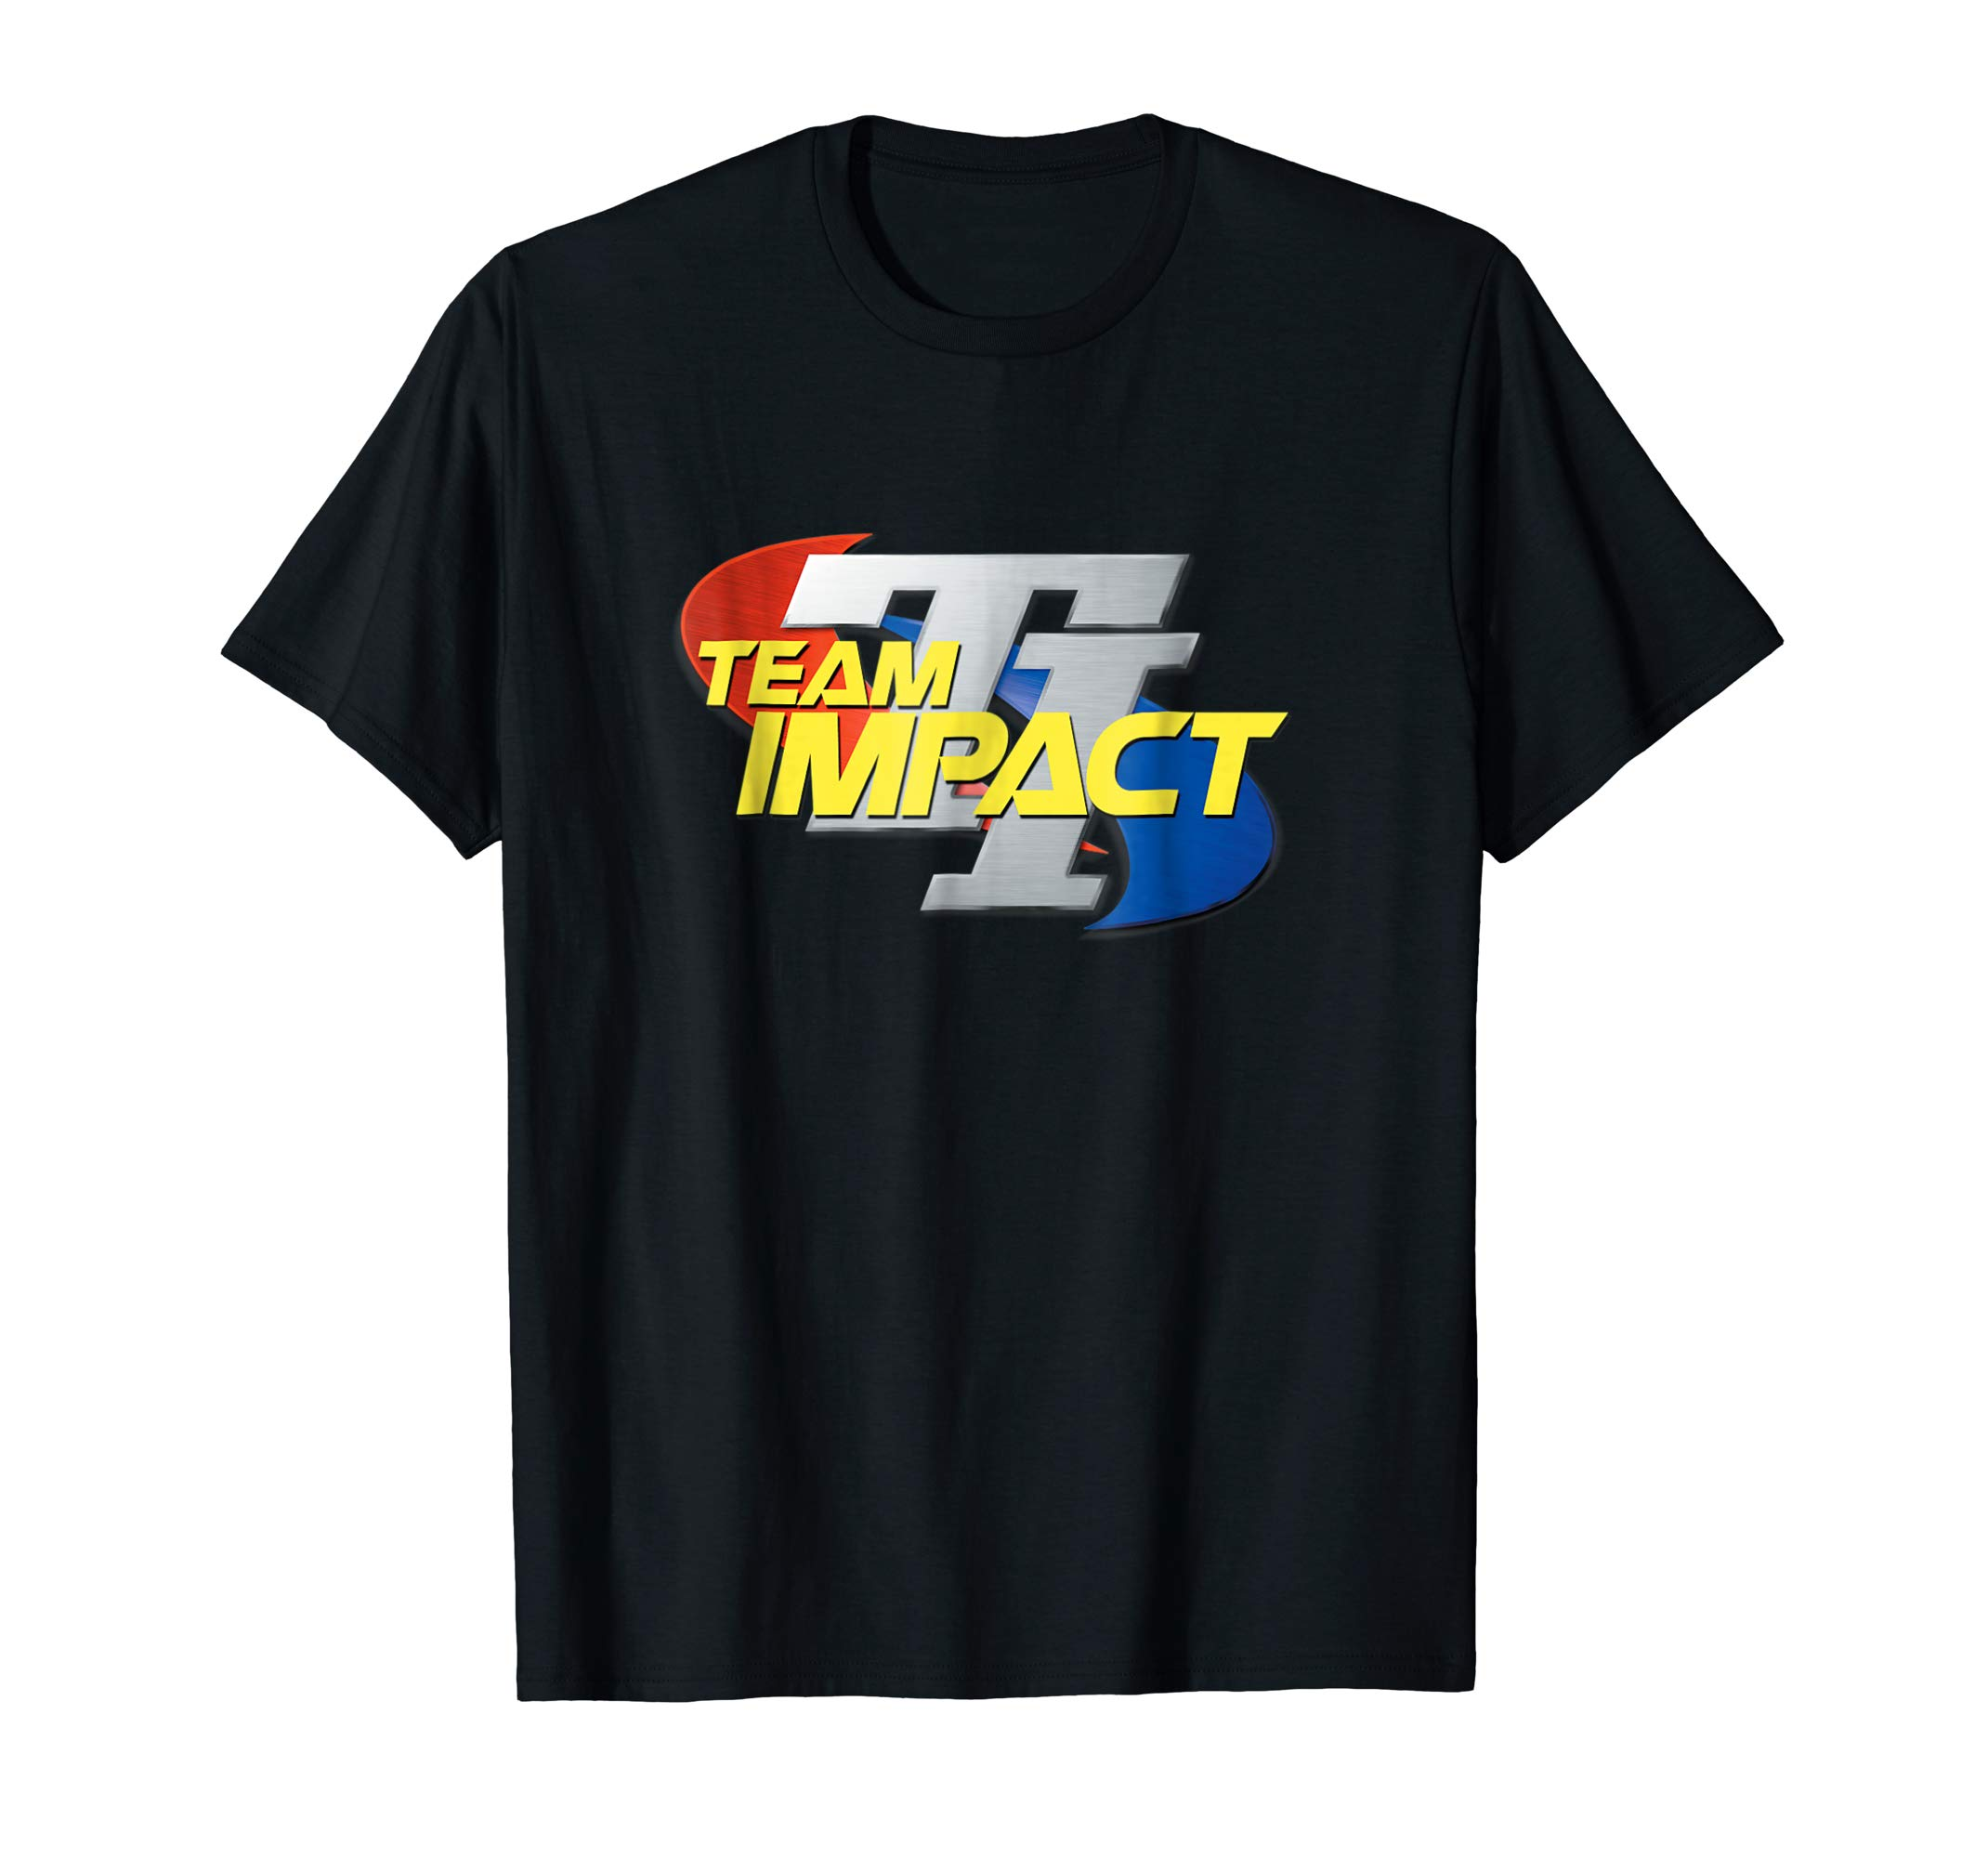 Team Impact Retro Logo - The original Team Impact logo in full color. Five colors to choose from. Lightweight, Classic fit, Double-needle sleeve and bottom hem